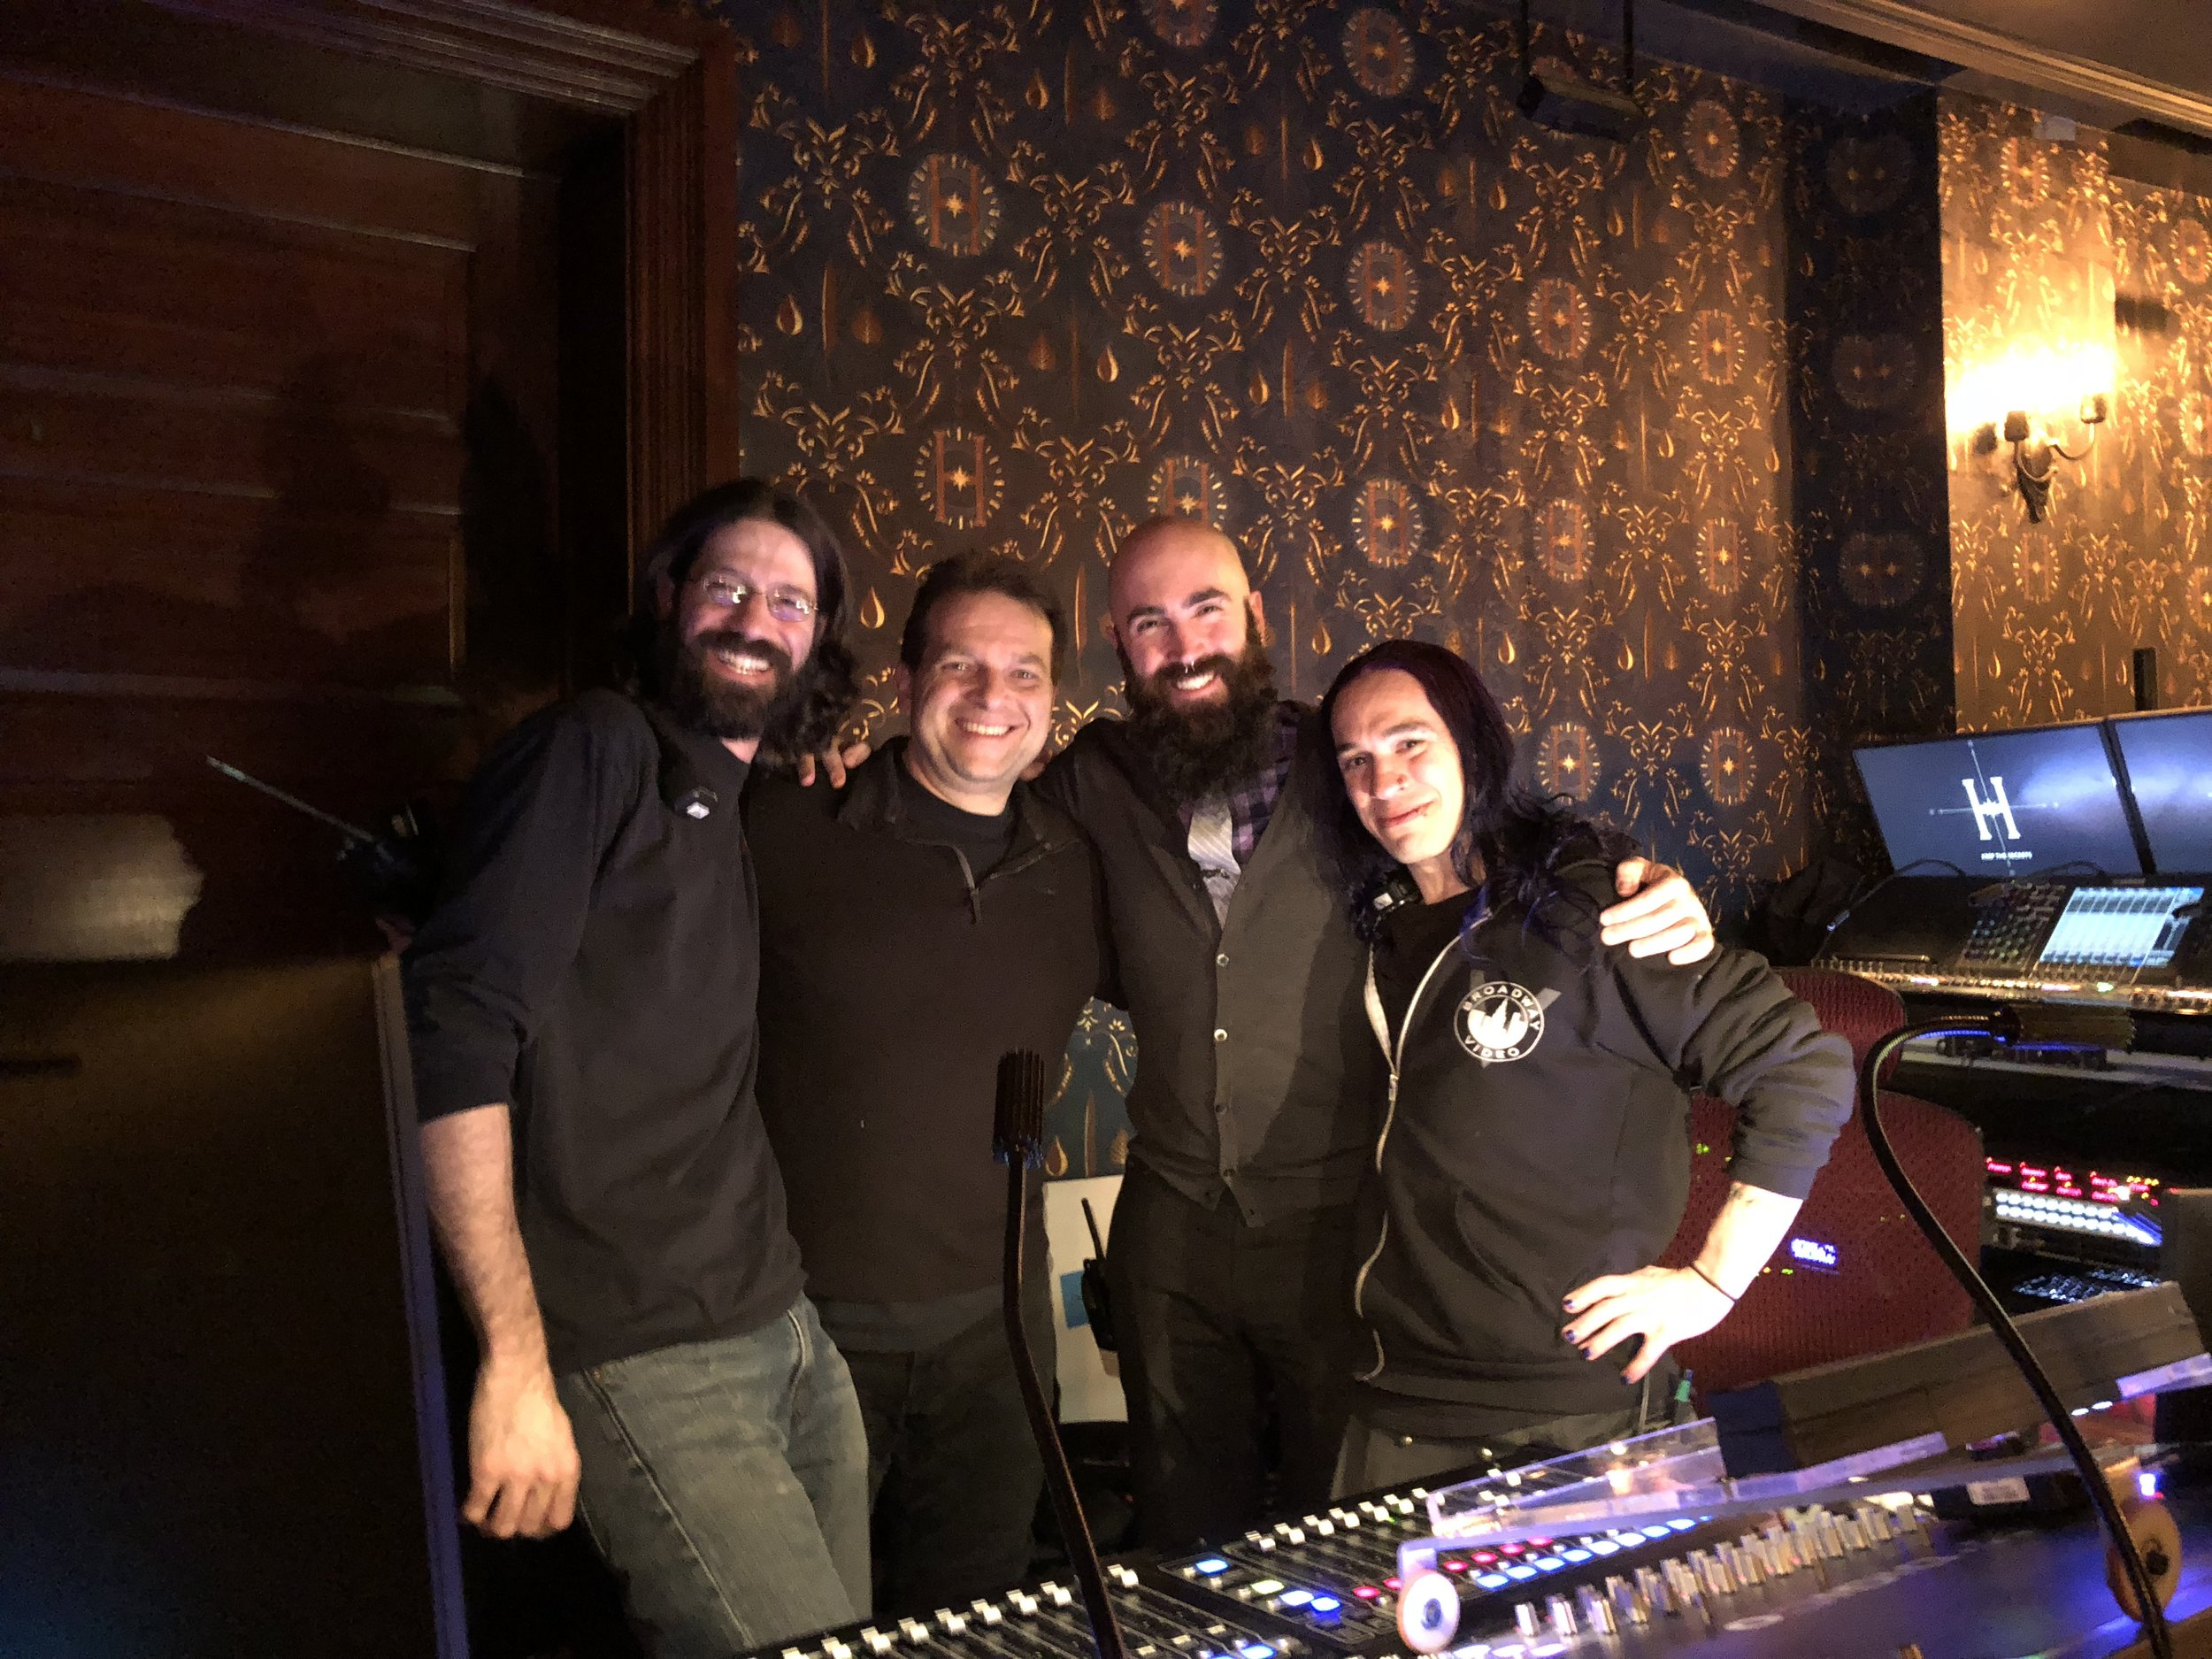 Some of the sound team: Rob Bass, Phil Lojo, Alex Hawthorn and Grace Wook